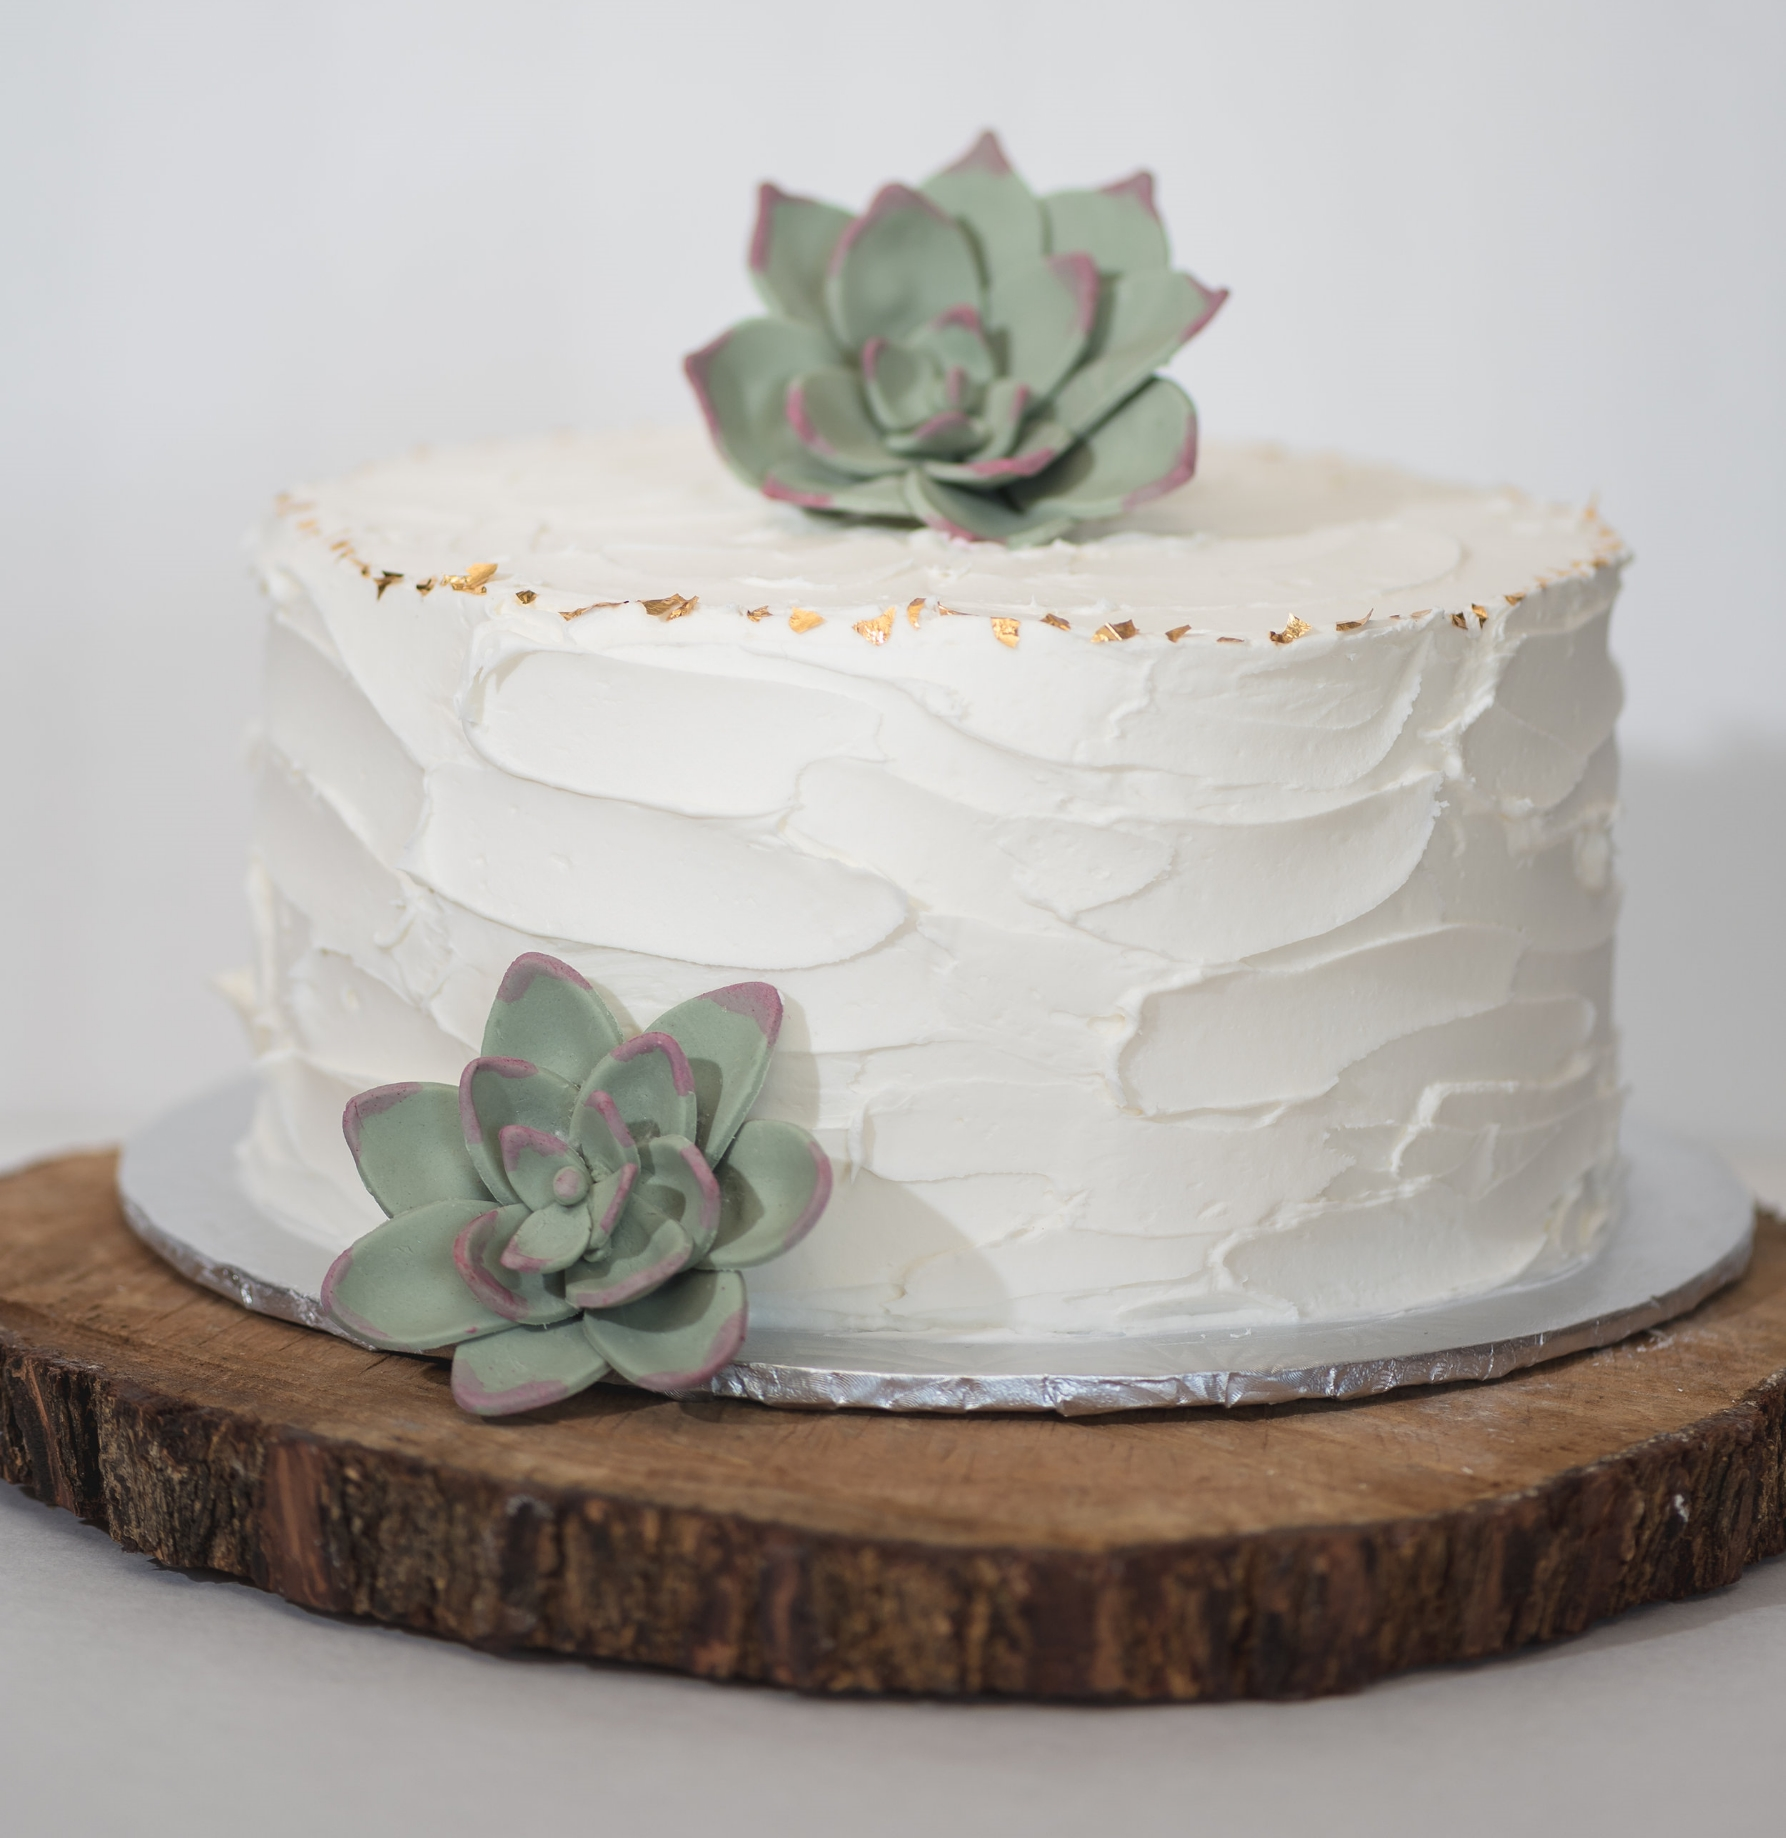 Rustic cake.Gold leaf and fondant succulents are additional